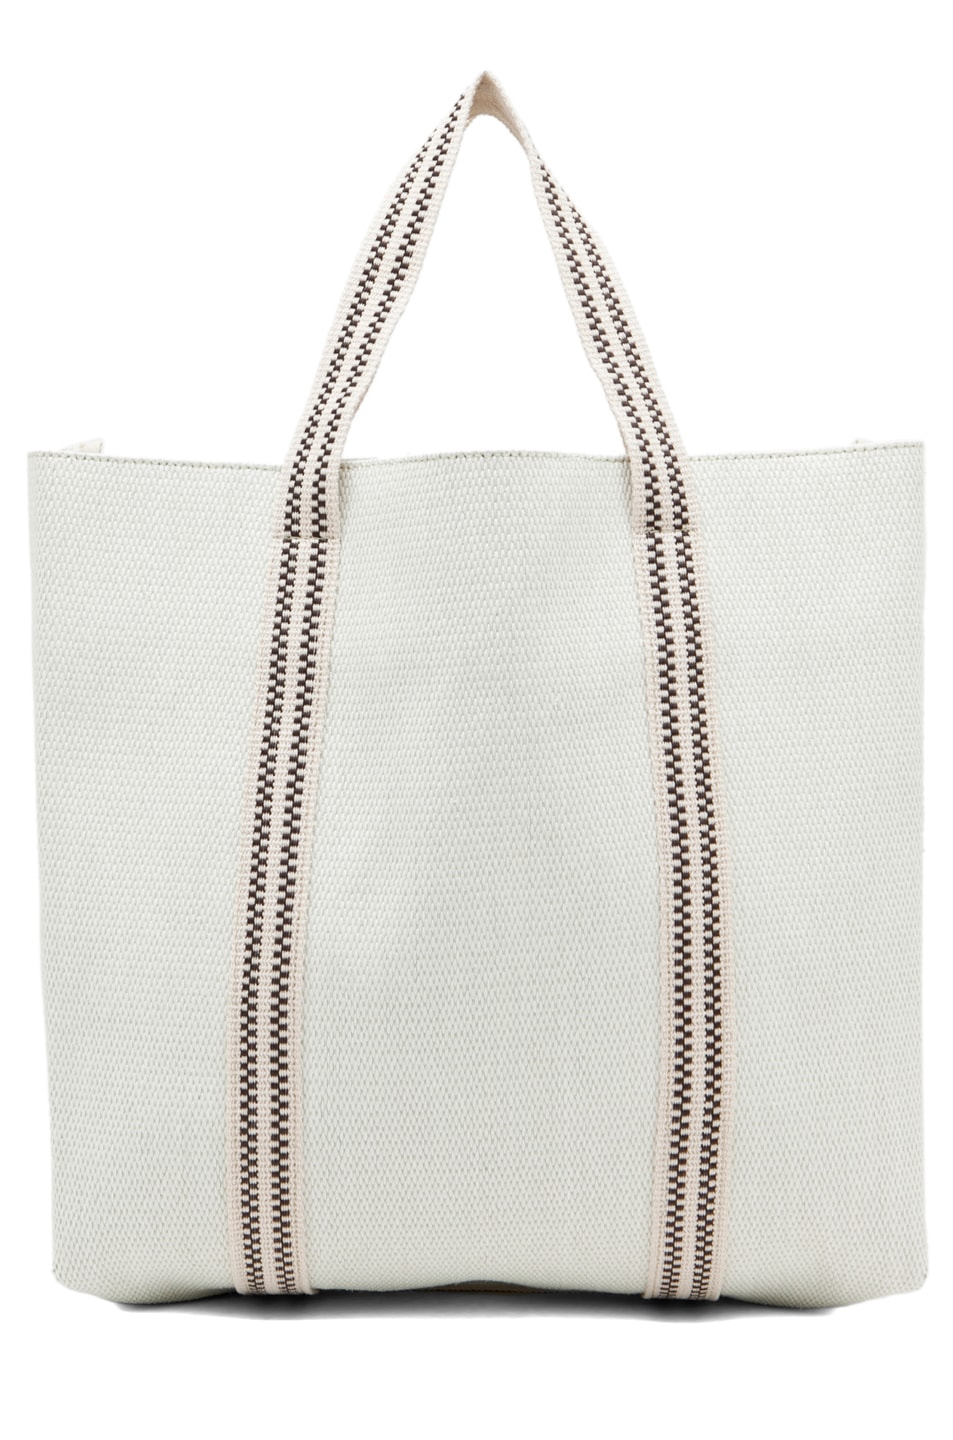 Chloe Borsa Beach Bag in Ivory | FWRD